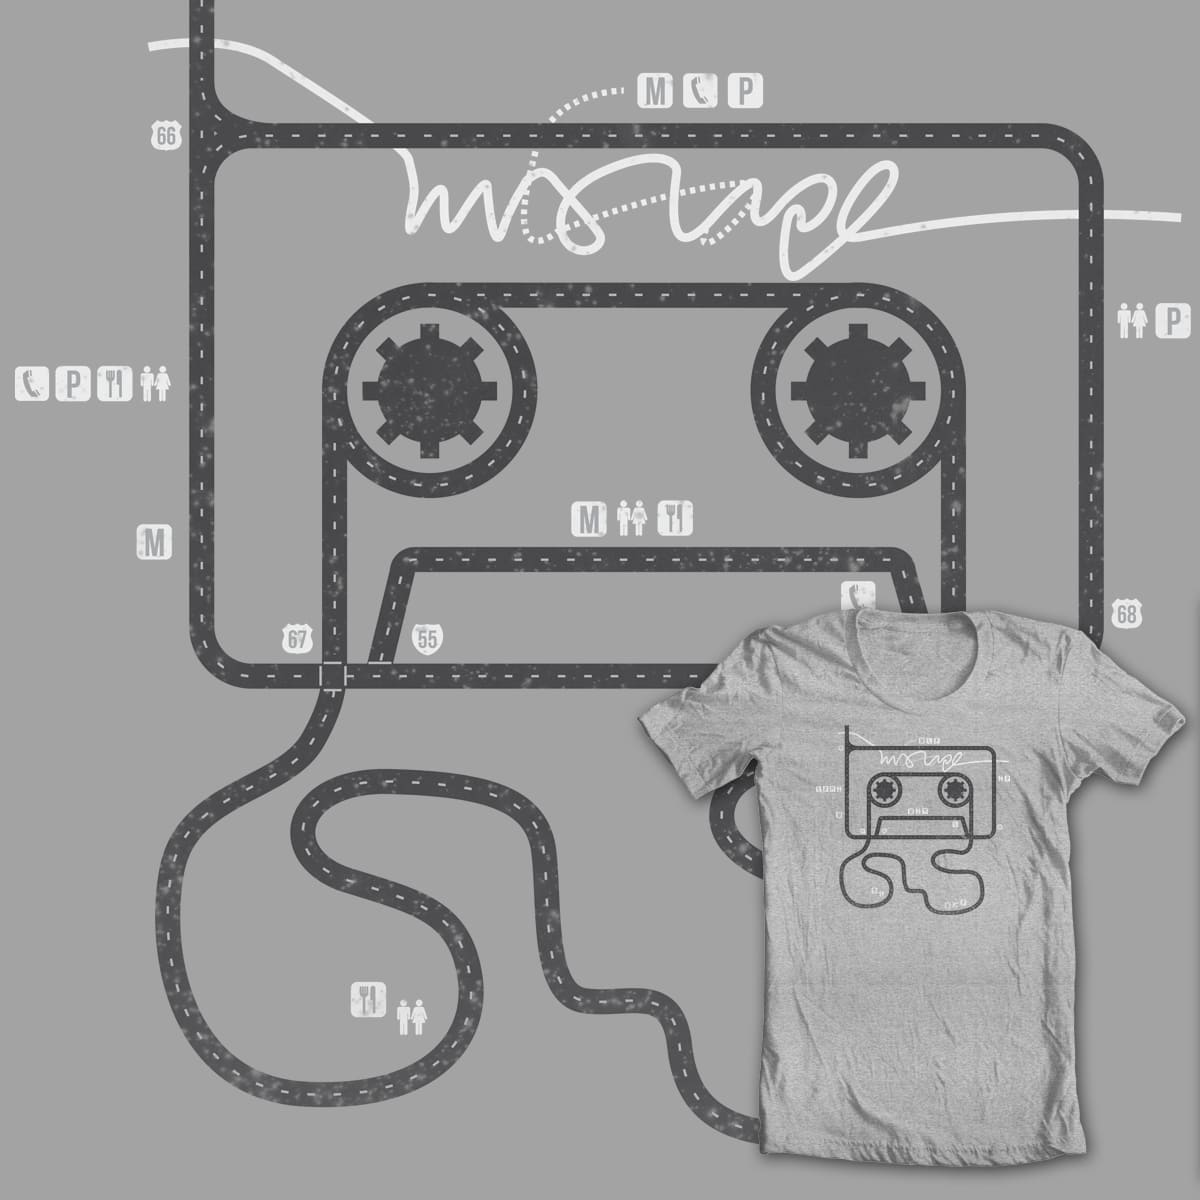 grand tape auto by mip1980 on Threadless